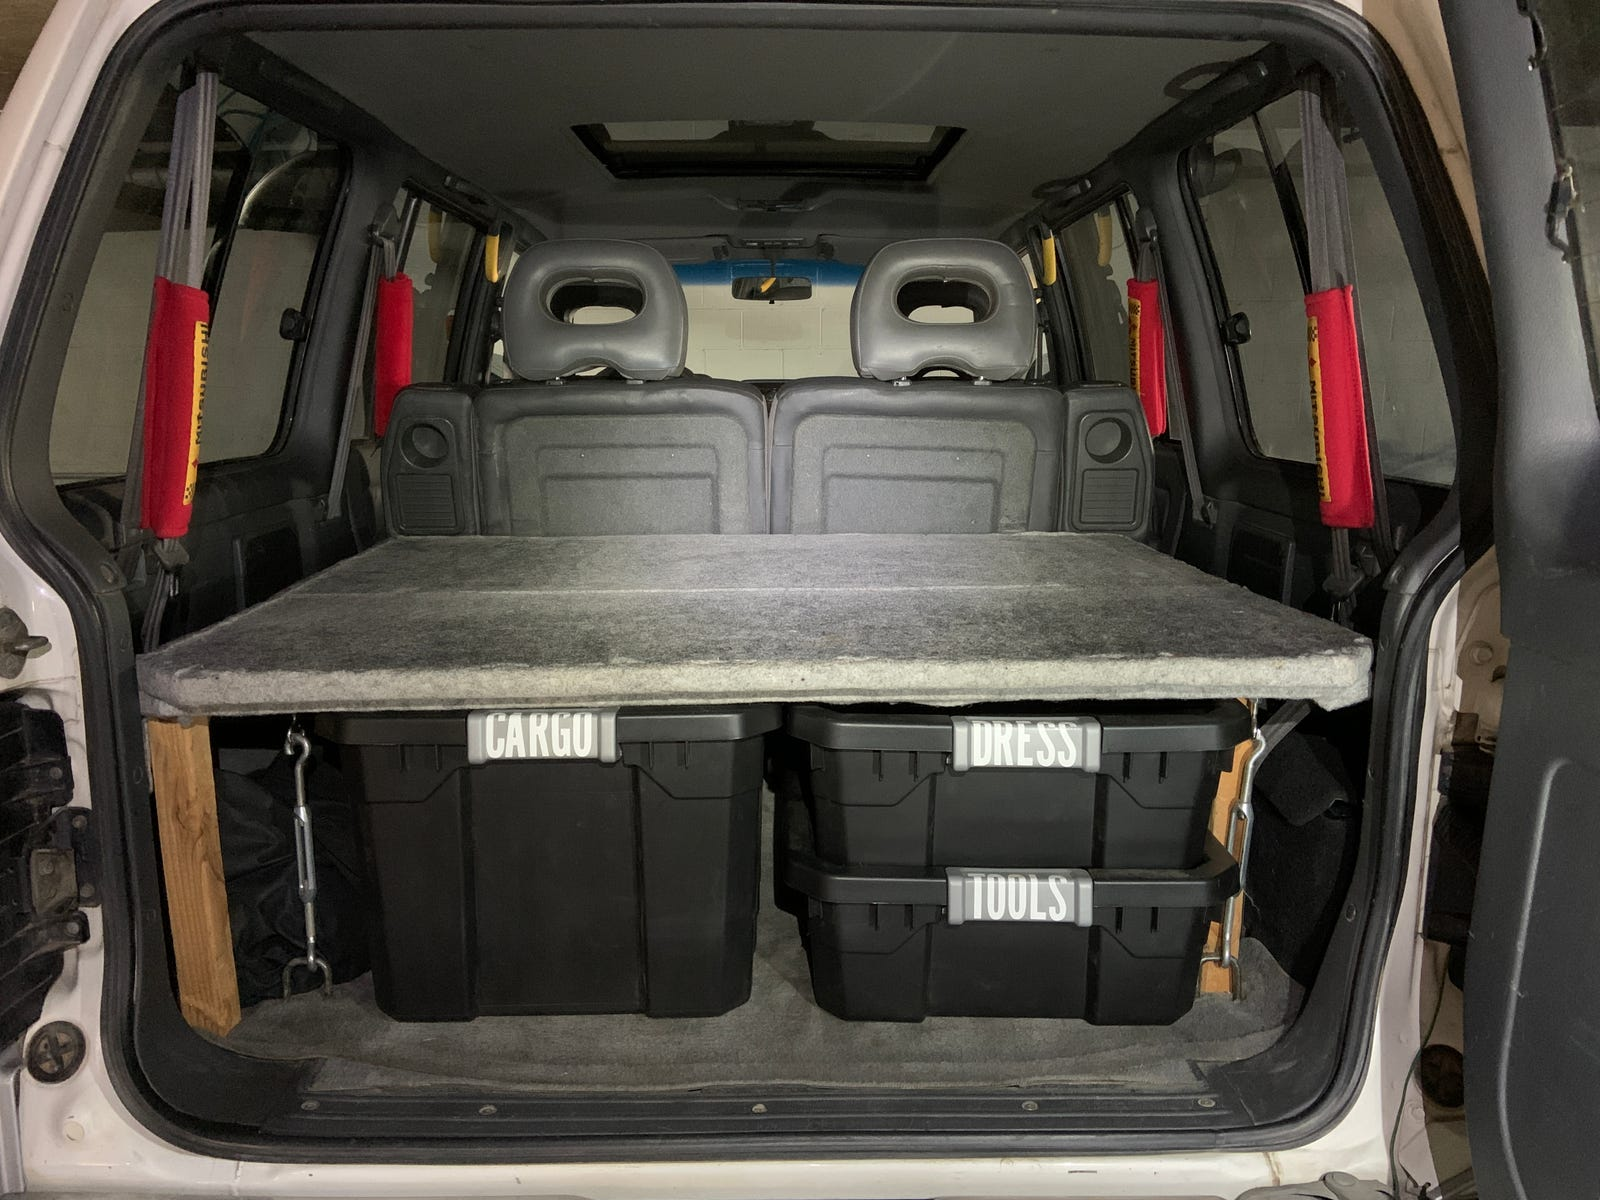 Daily driver mode: Tools and cargo are hidden from view outside, but there's still a shelf for more luggage